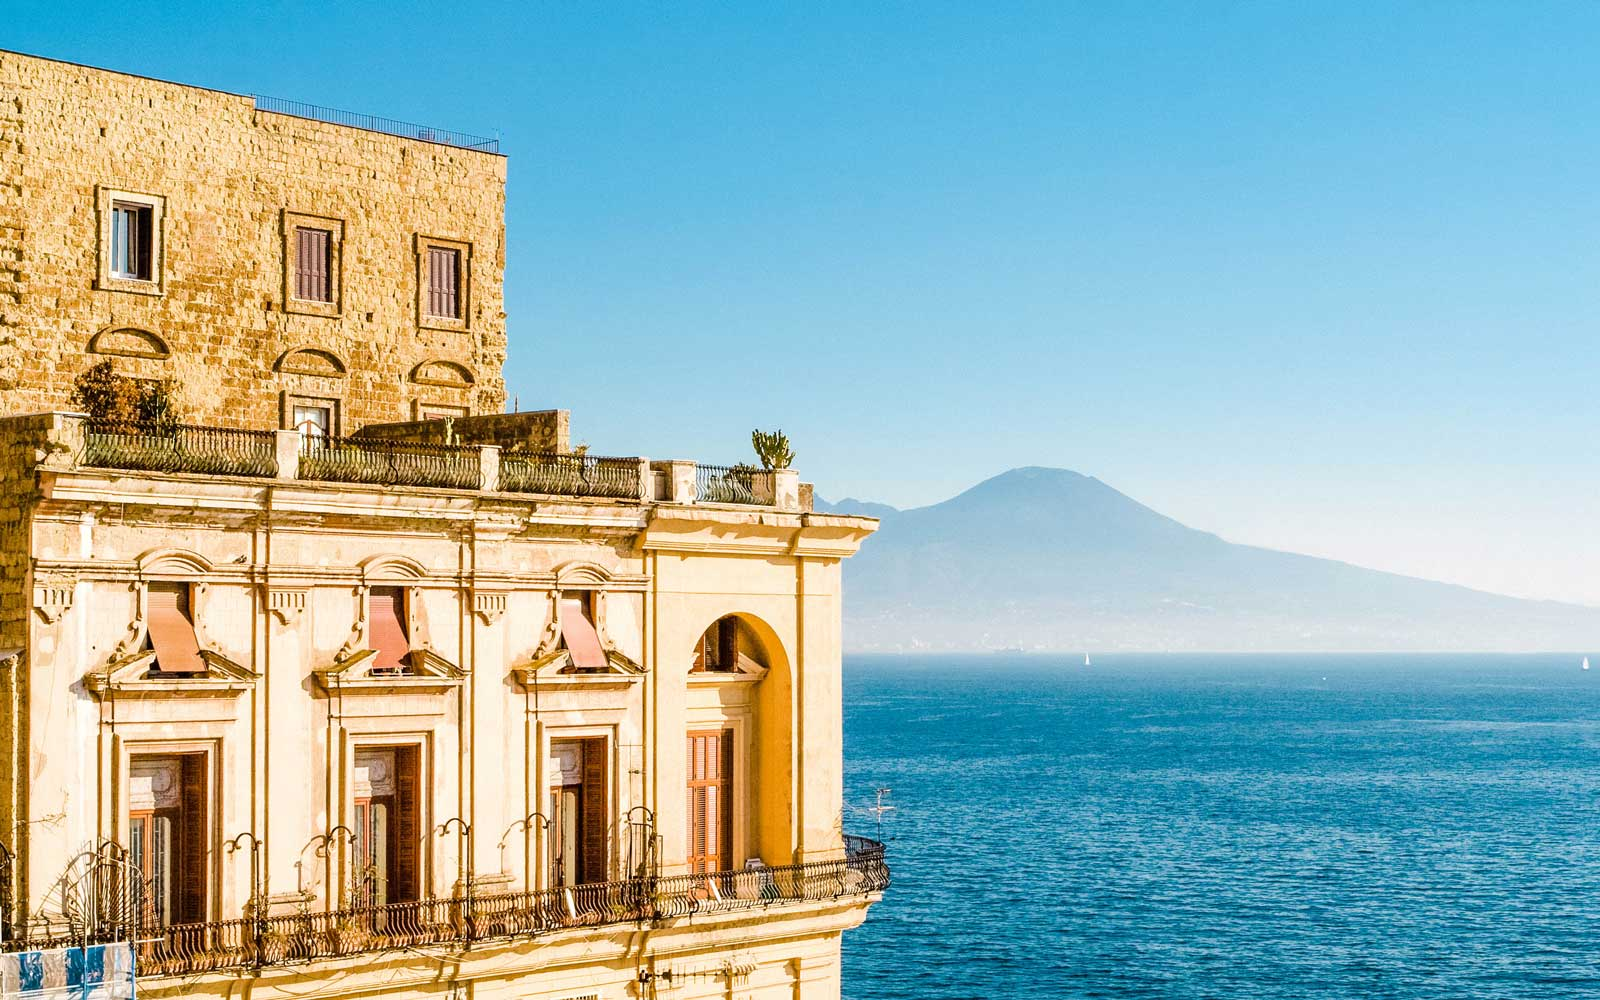 United Is Launching the Only Nonstop Flights Between the U.S. and Naples, Italy